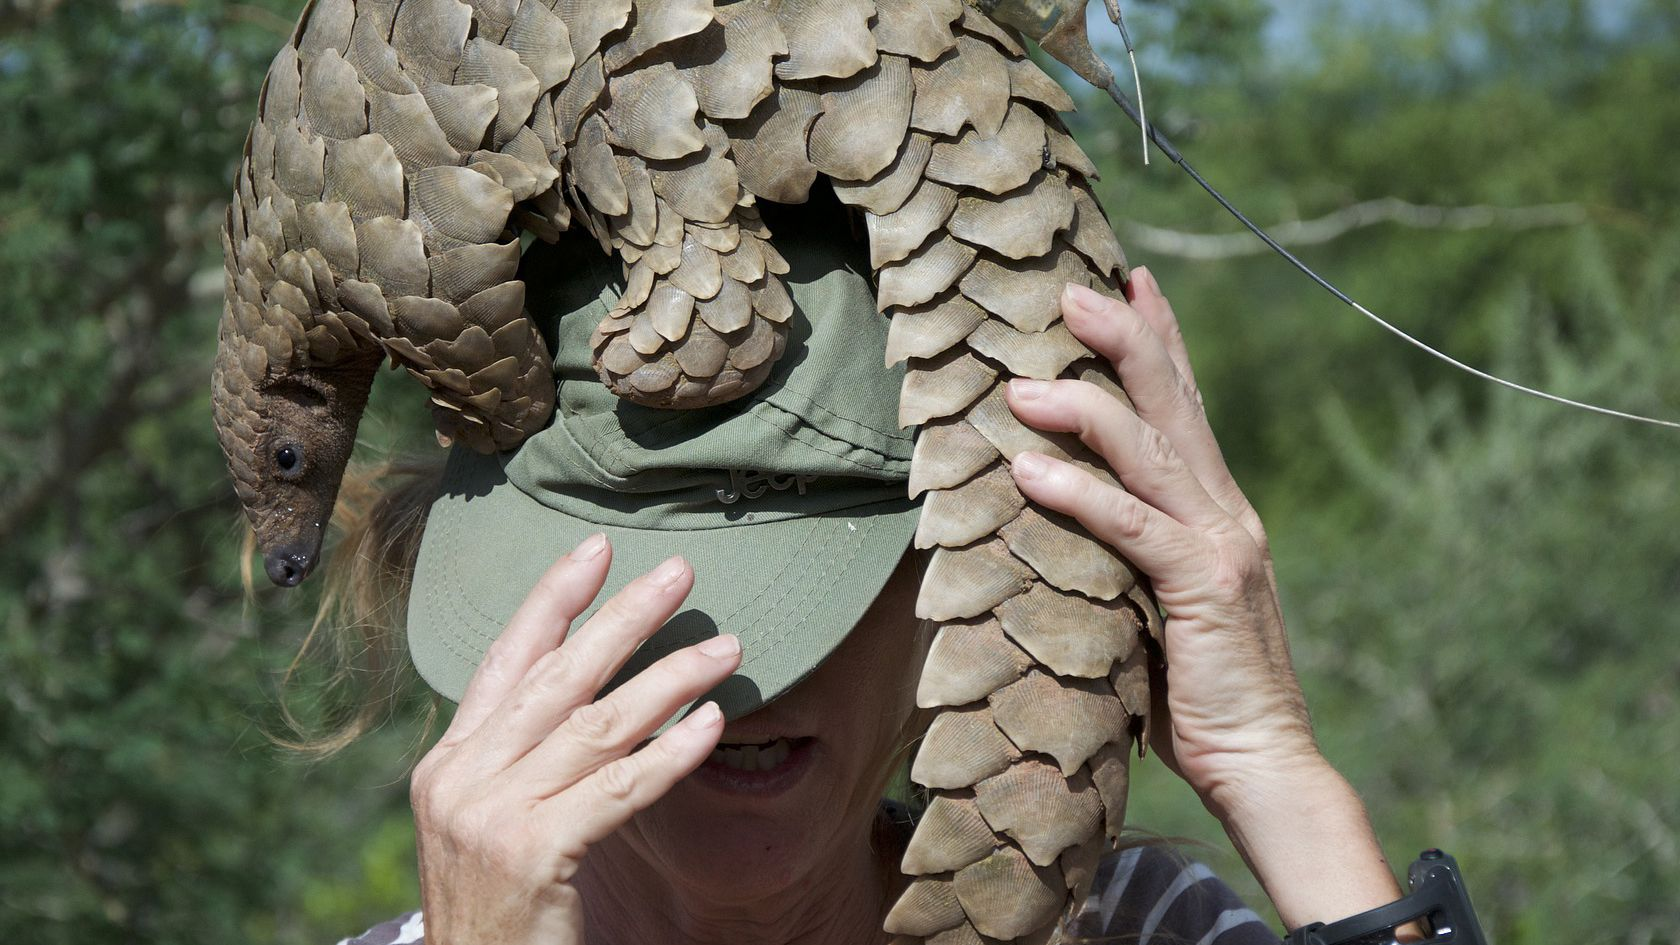 A live pangolin sitting on a person's head in Namibia. Image courtesy of Alex Strachan via pixabay